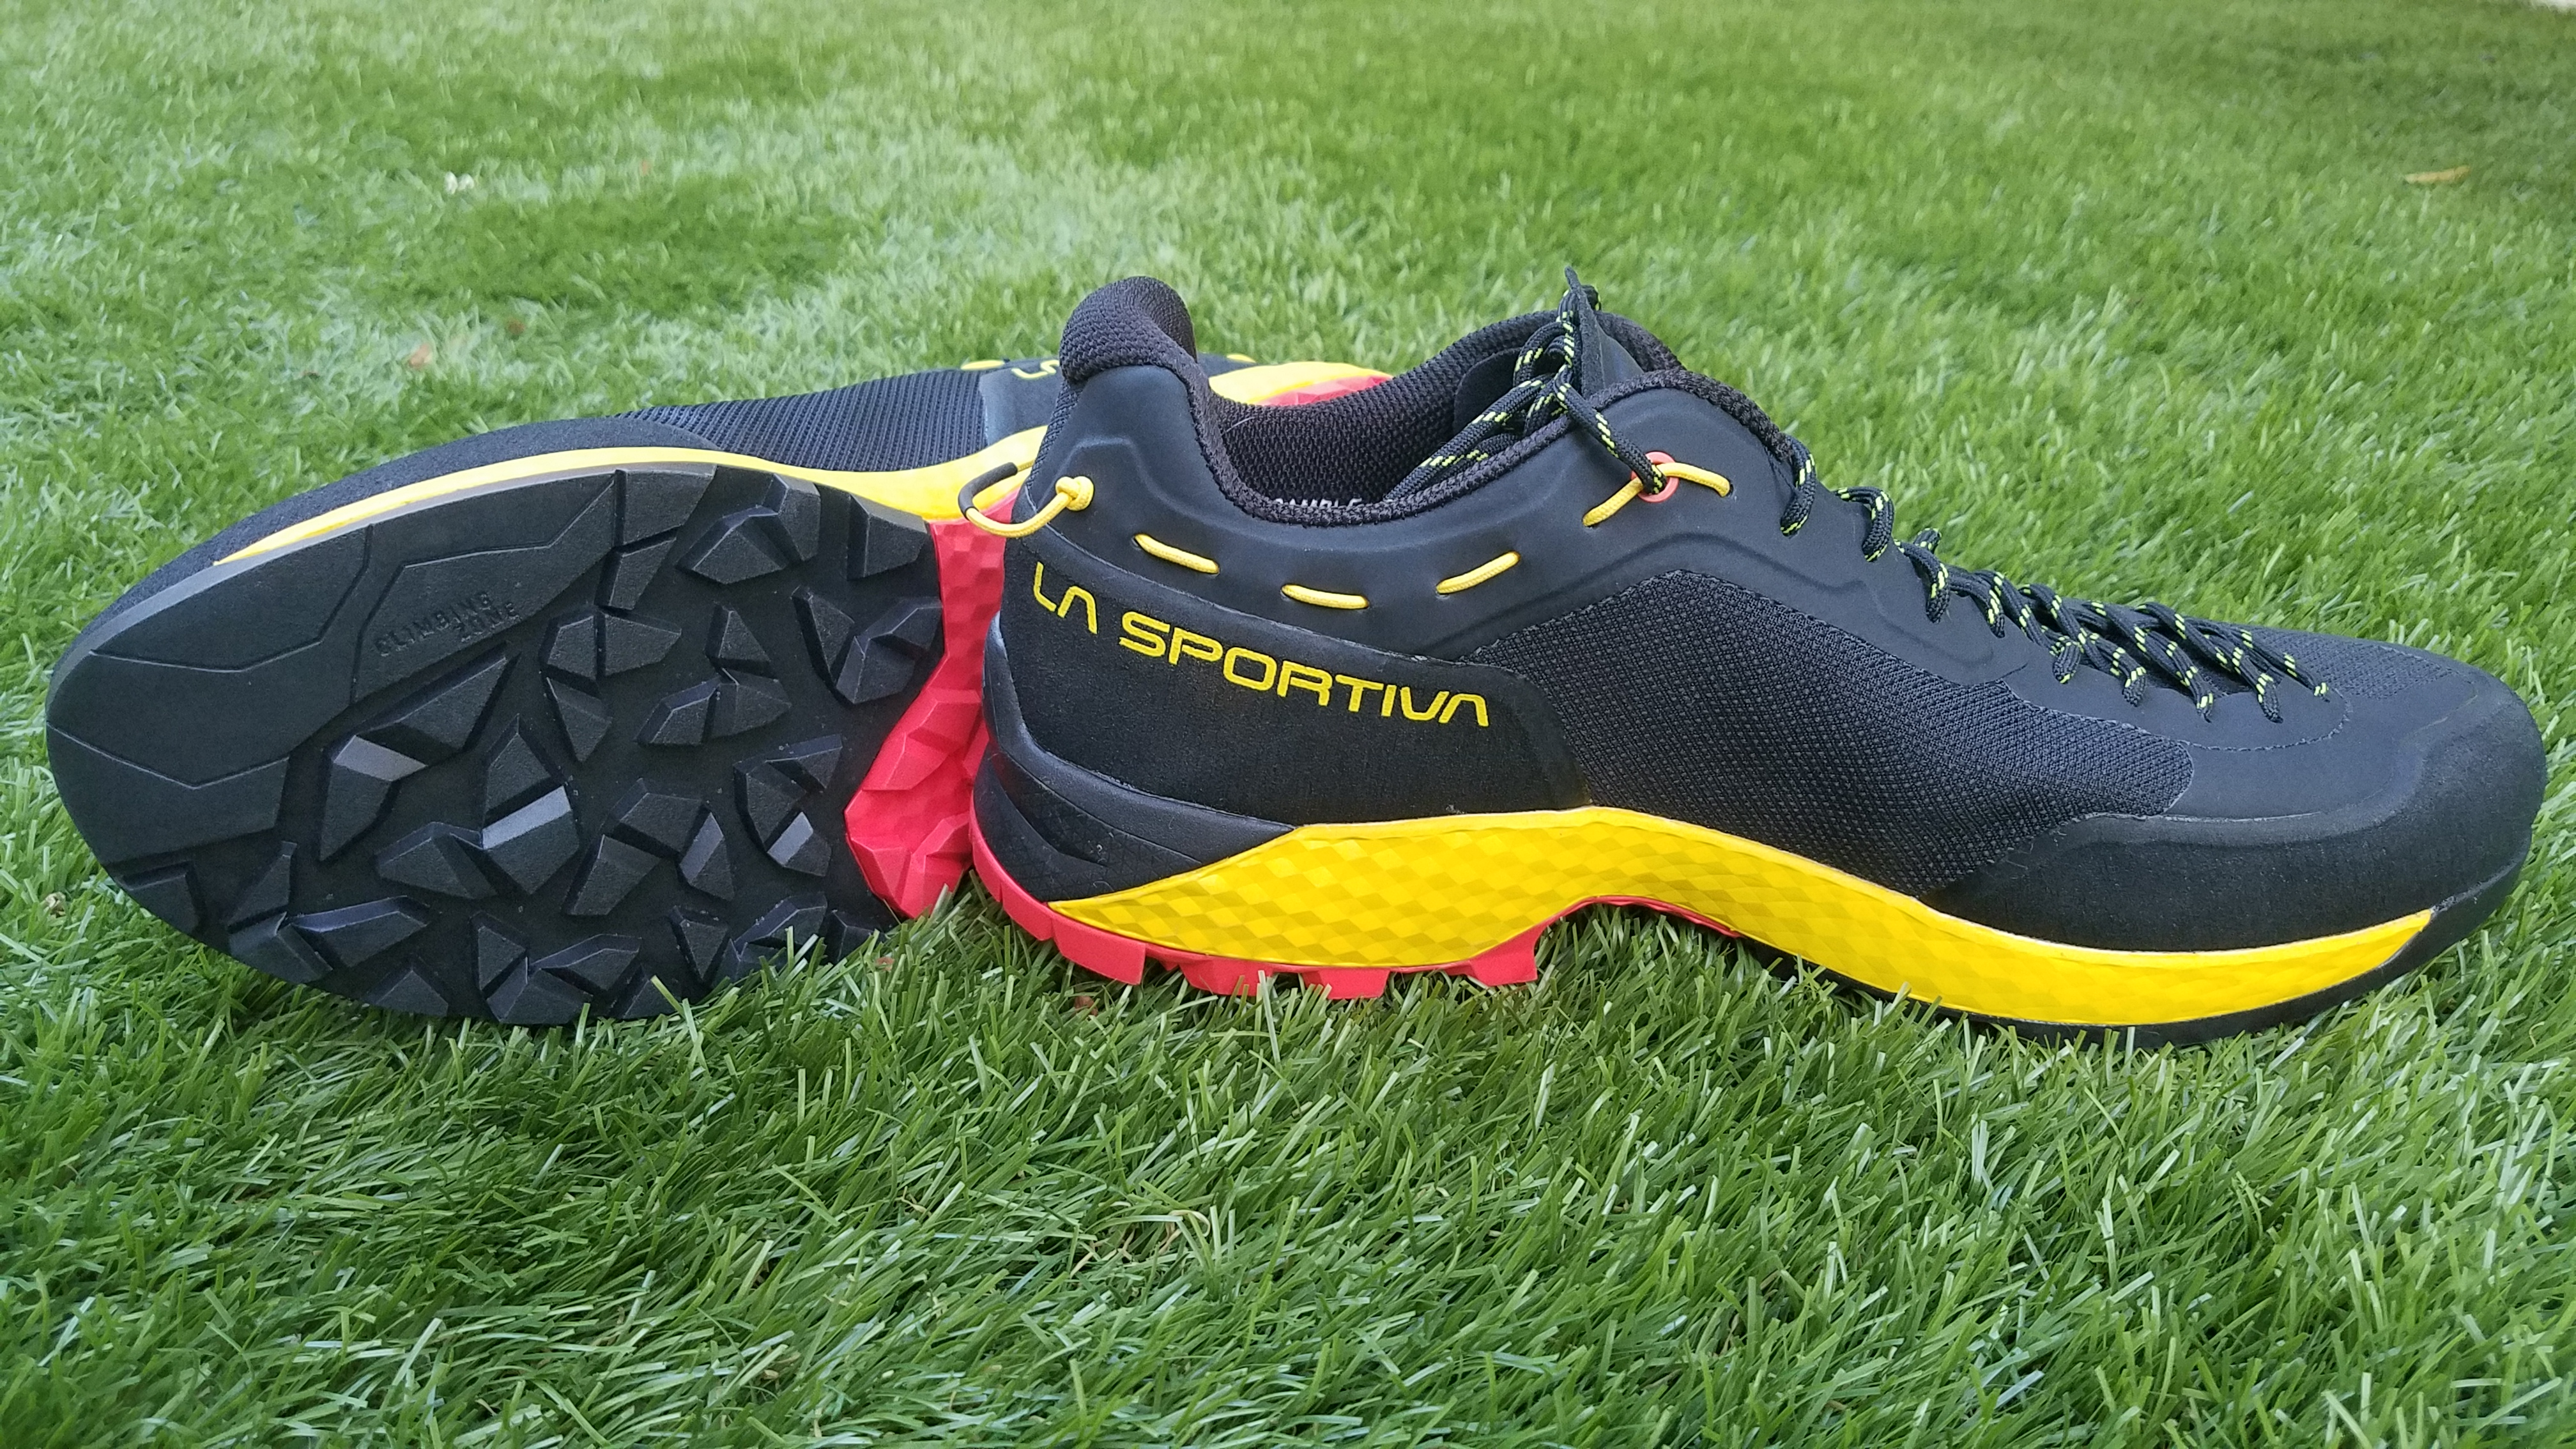 La Sportiva TX Guide Review: The Most Runnable Approach Shoe